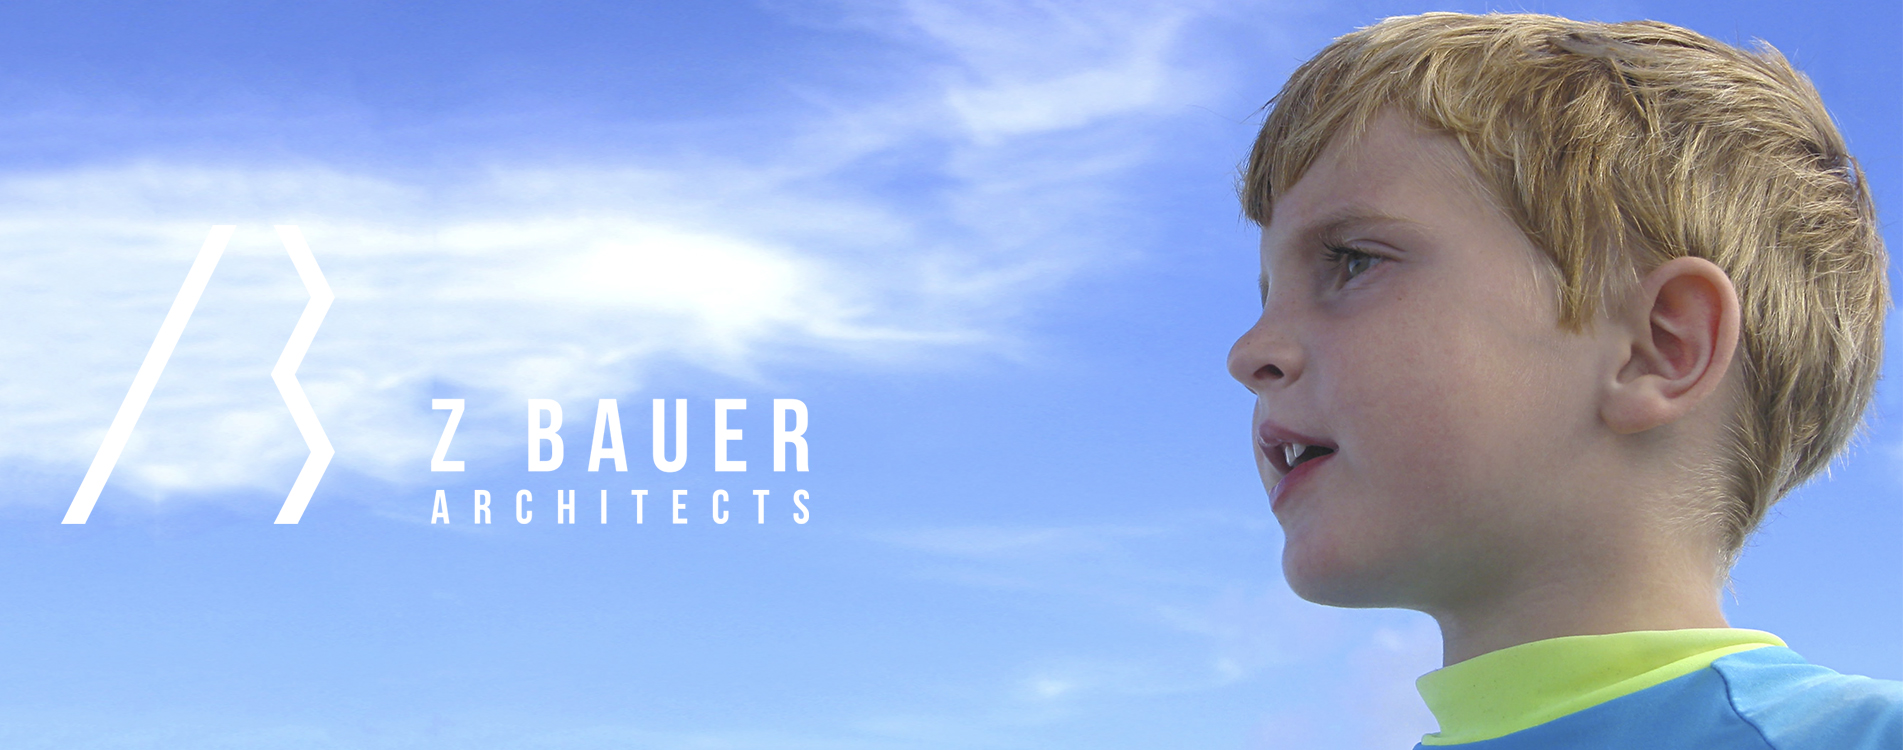 Zohrab Bauer Architect Philosophy helping children with special needs